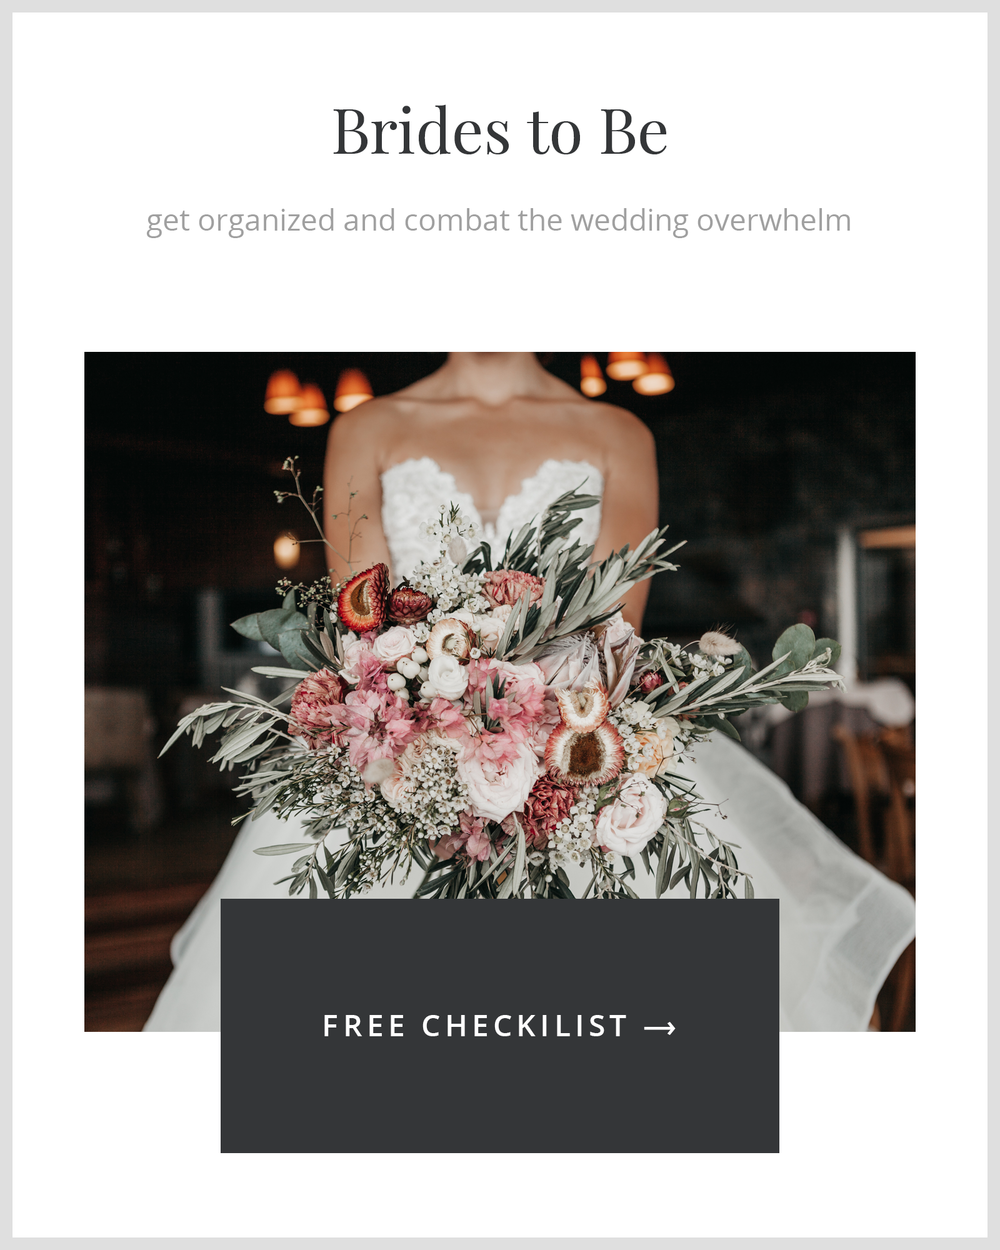 Bride holding large beautiful rustic floral bouquet - get organized and combat the wedding overwhelm - grey rectangle with free checklist text